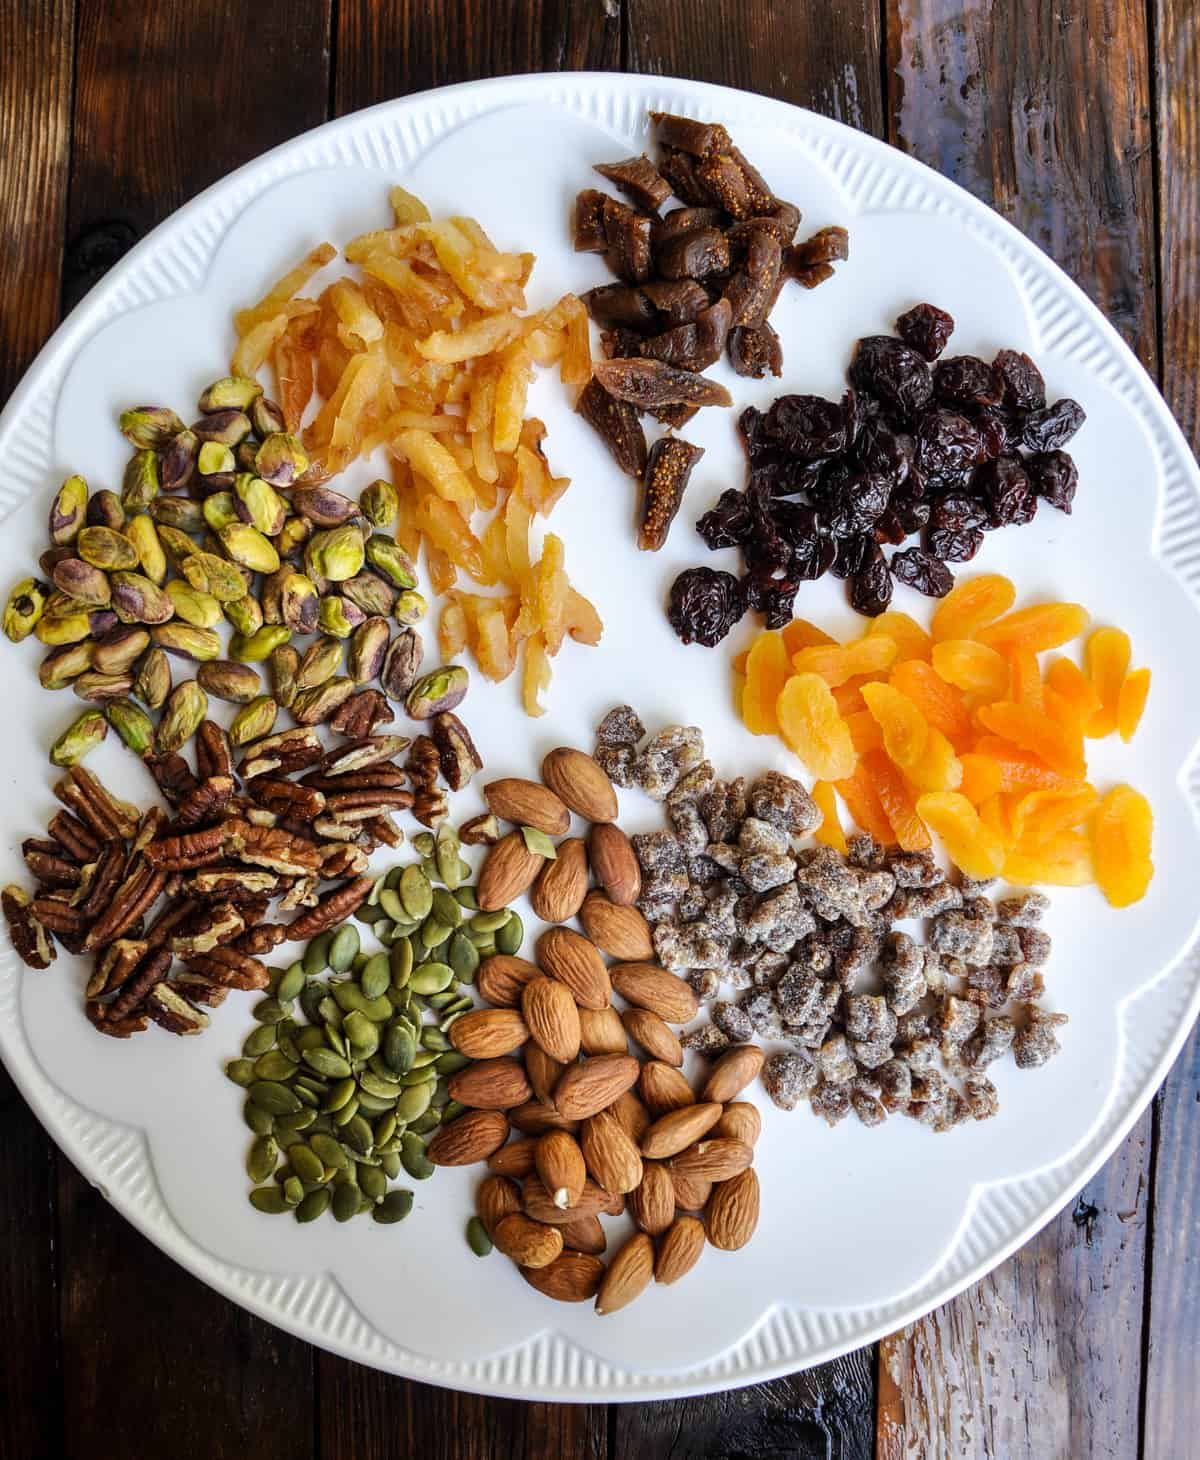 Ingredients: dried fruit and nuts